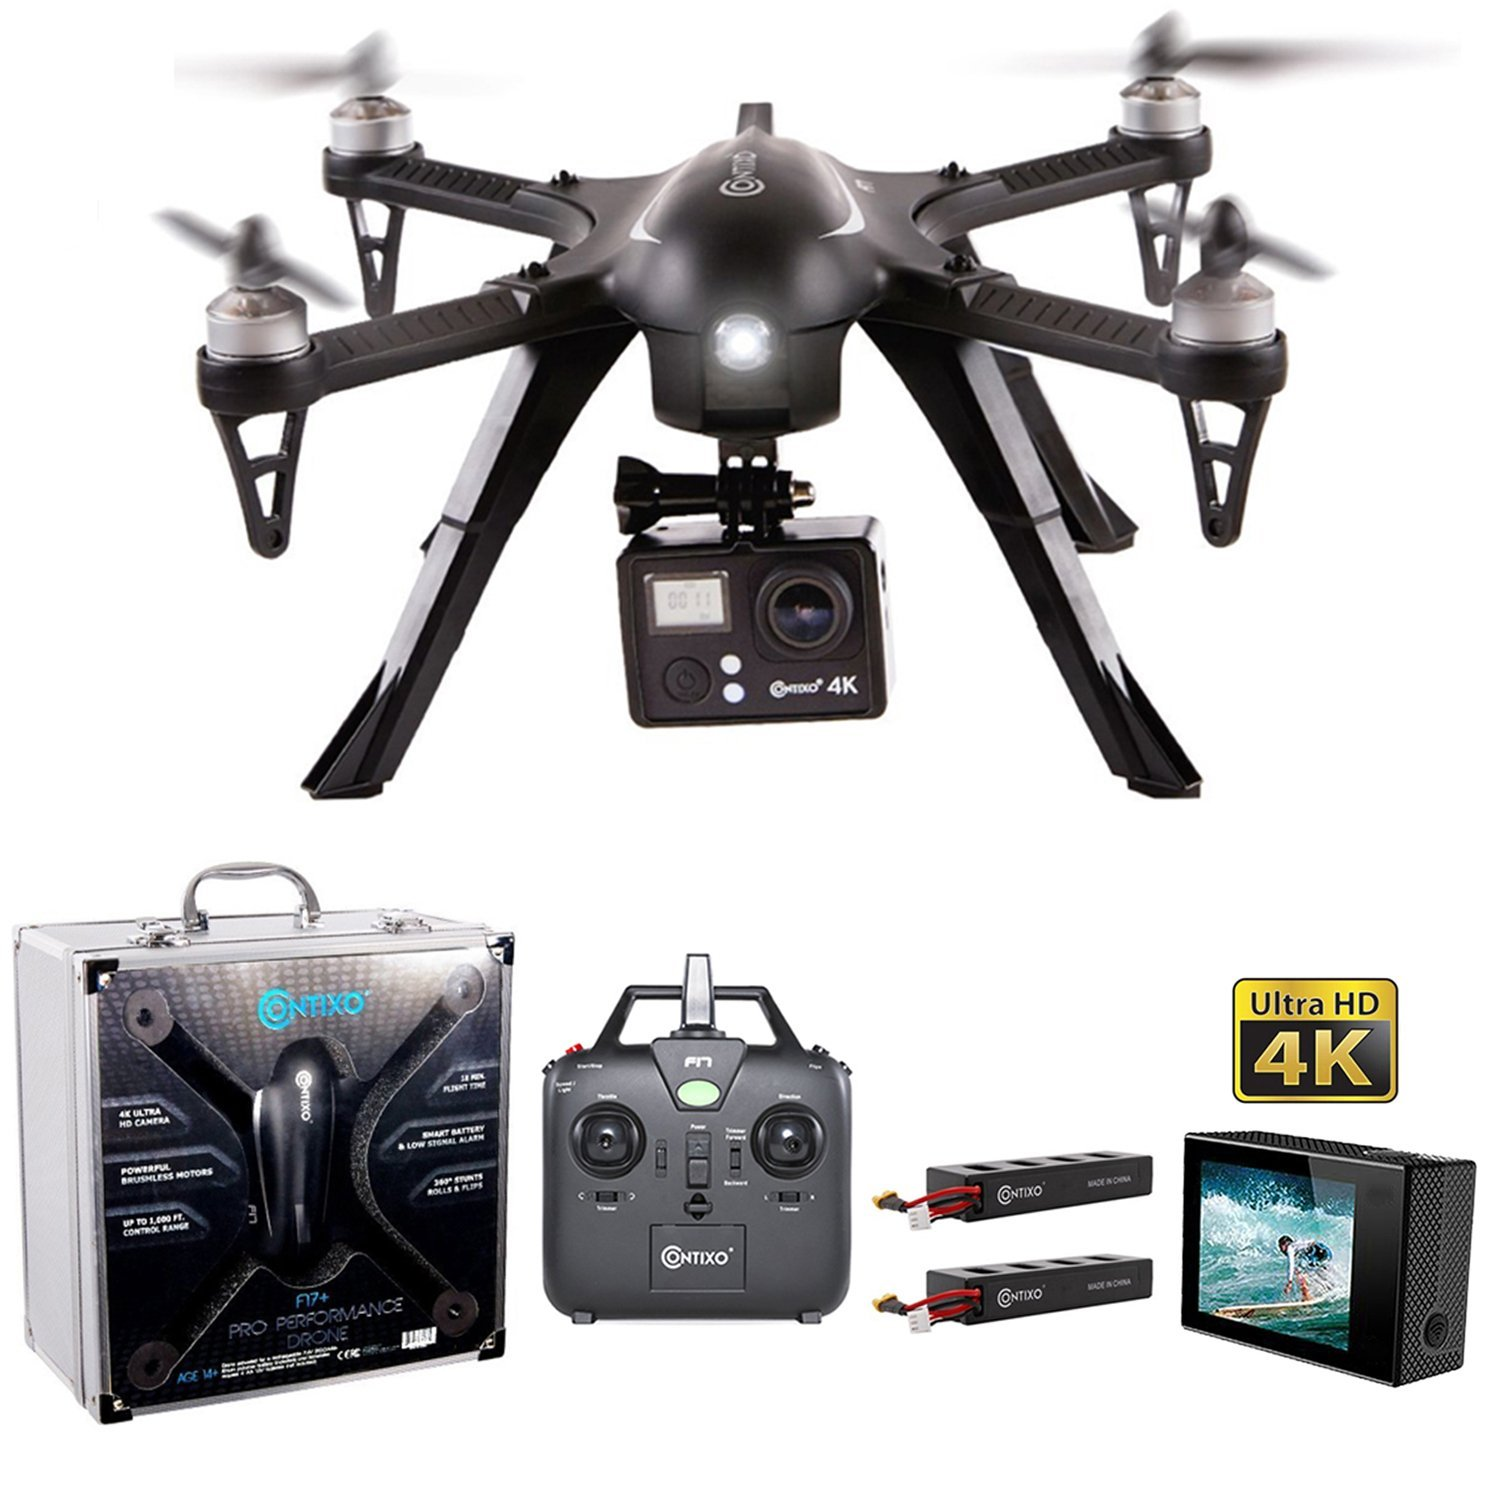 Contixo F17+ RC Quadcopter Drone 2.4Ghz 6-Axis Gyro 4 Channels, 4k Ultra HD camera included, 18 min Flight Time, Hardcase Included